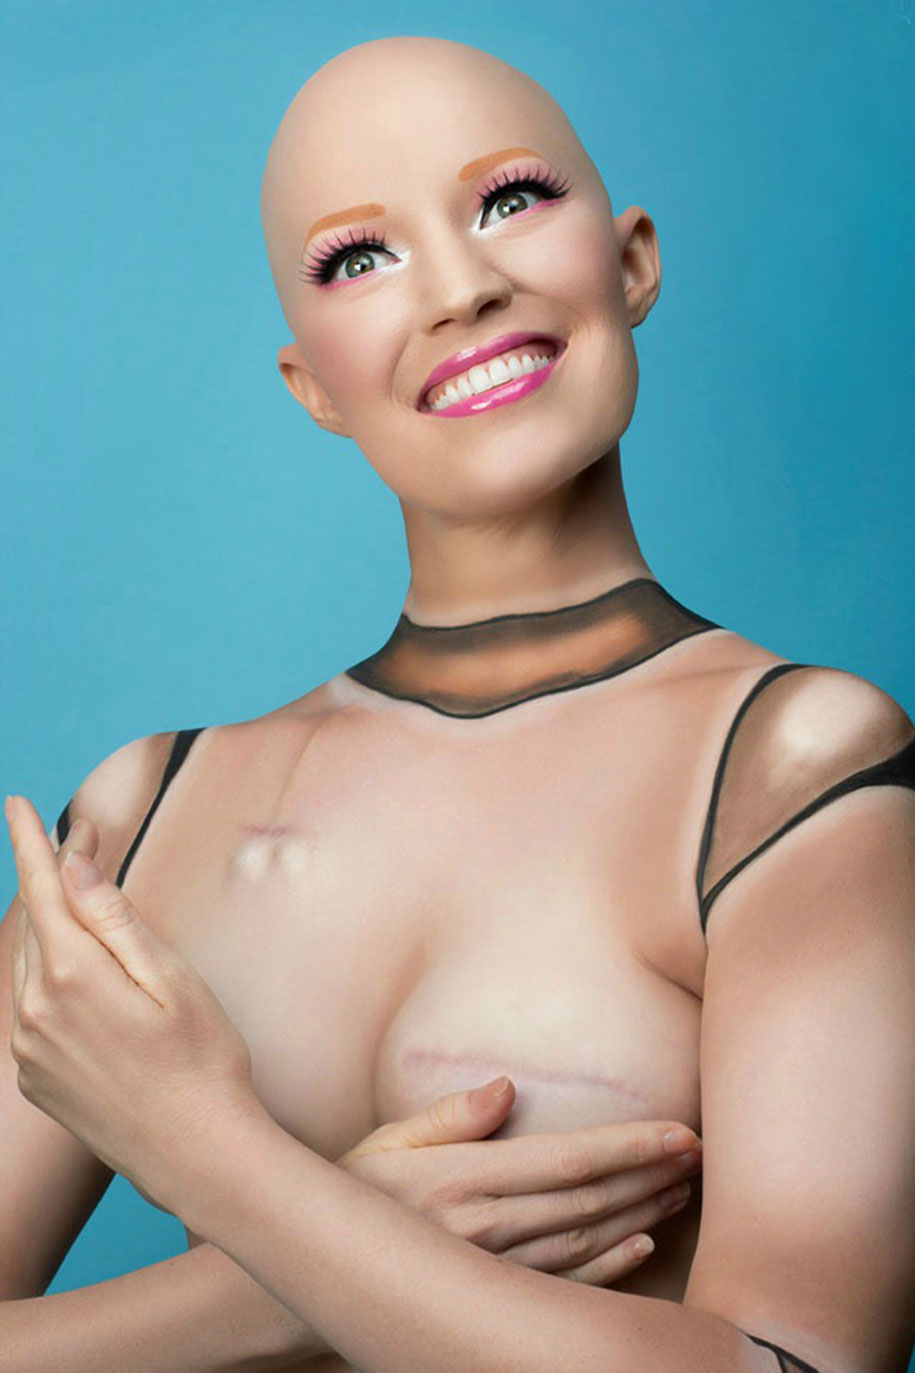 cancer-mastectomy-photo-series-my-breast-choice-aniela-mcguinness-4